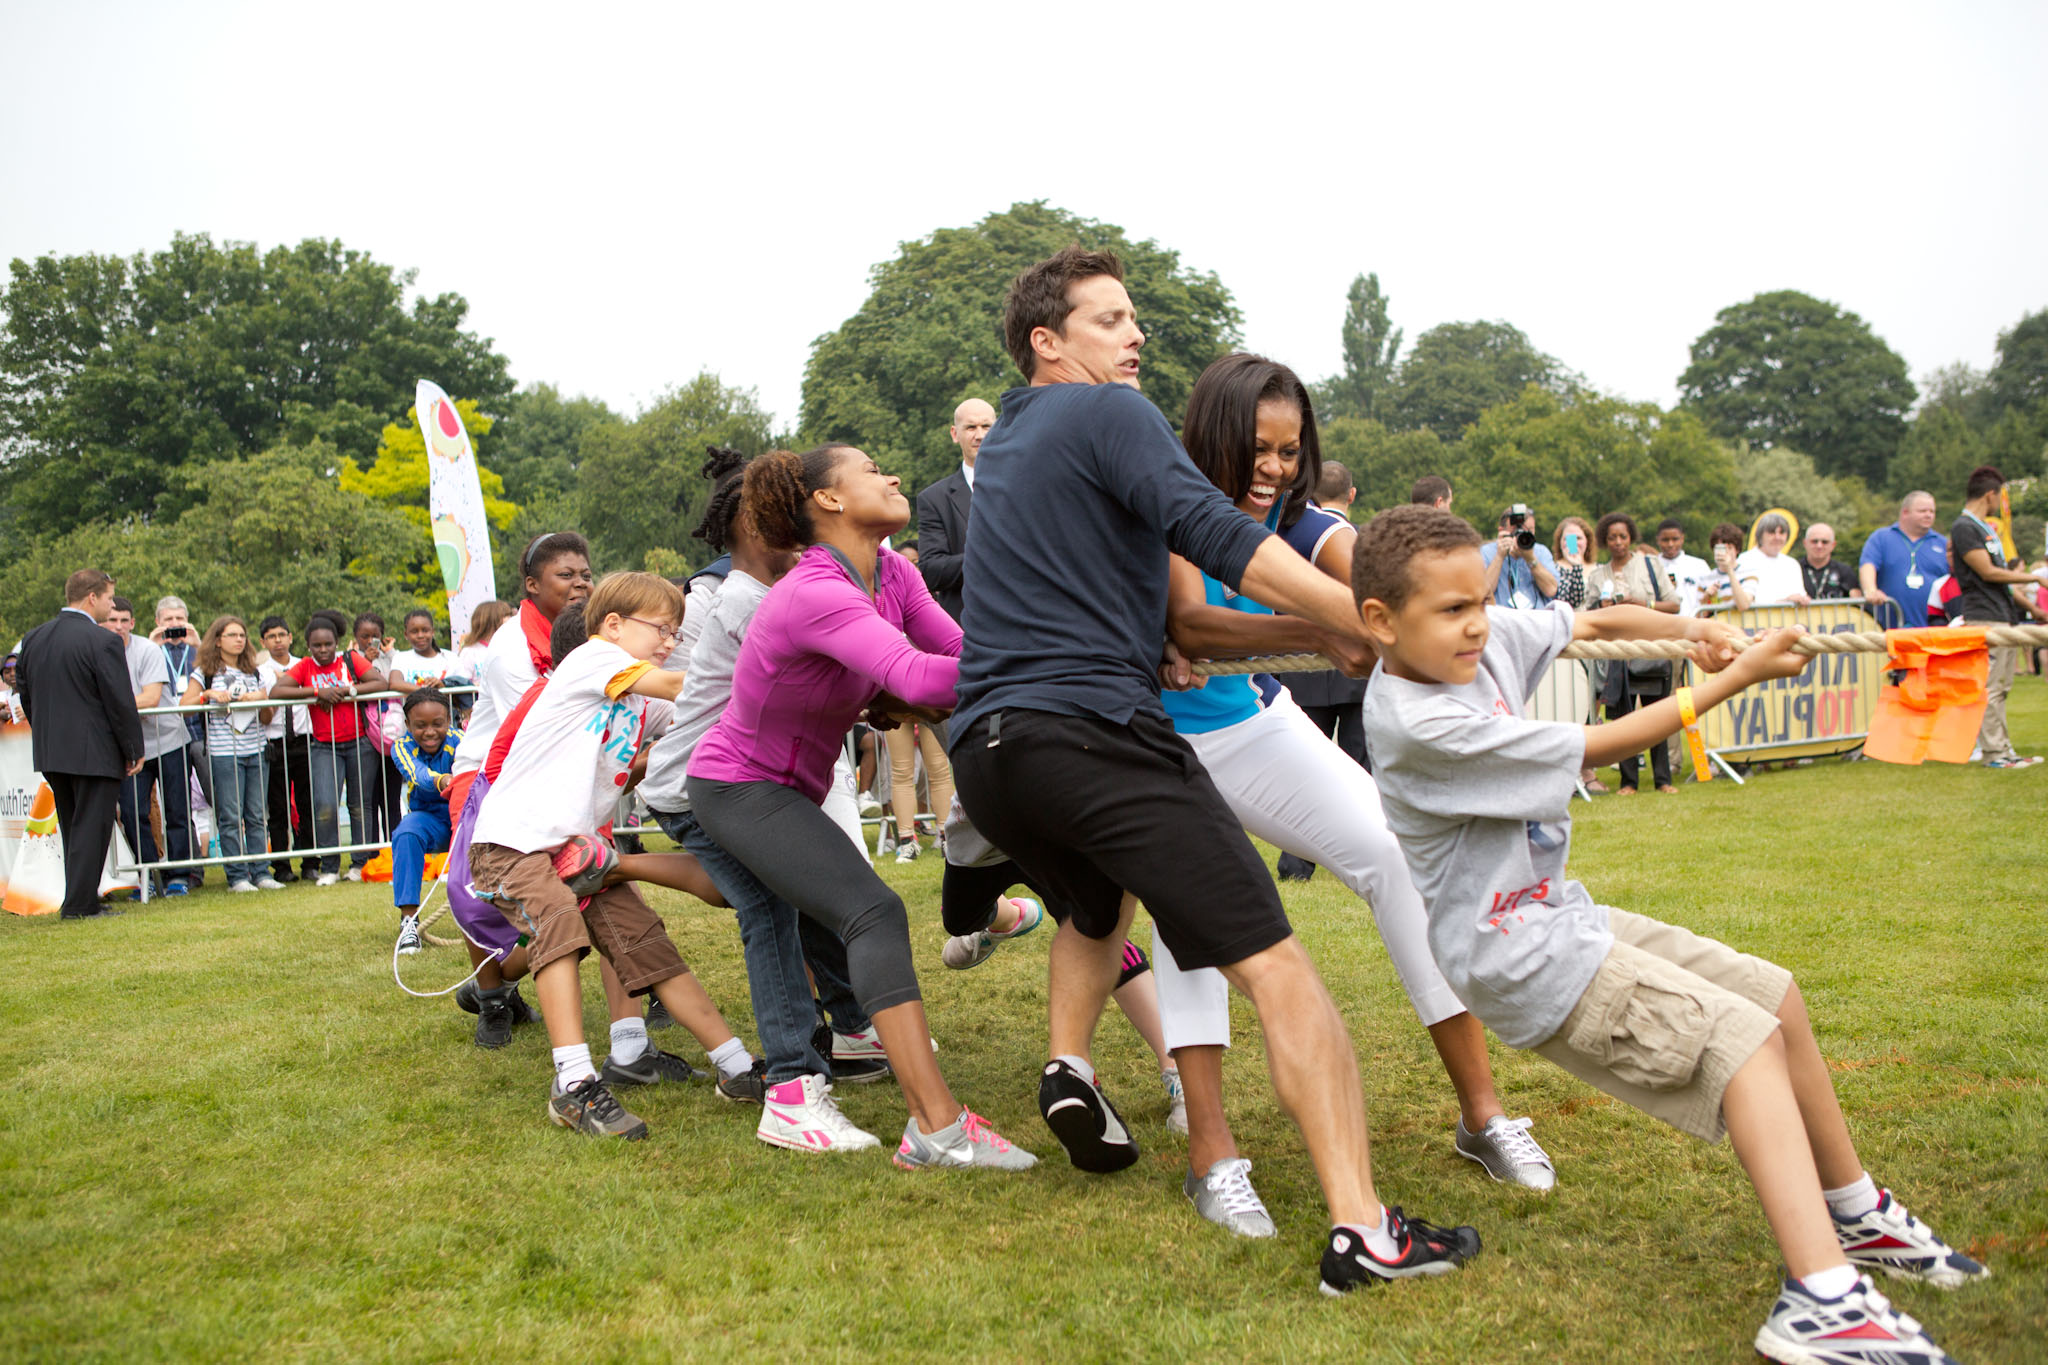 Mrs. Obama Participates In A Tug Of War